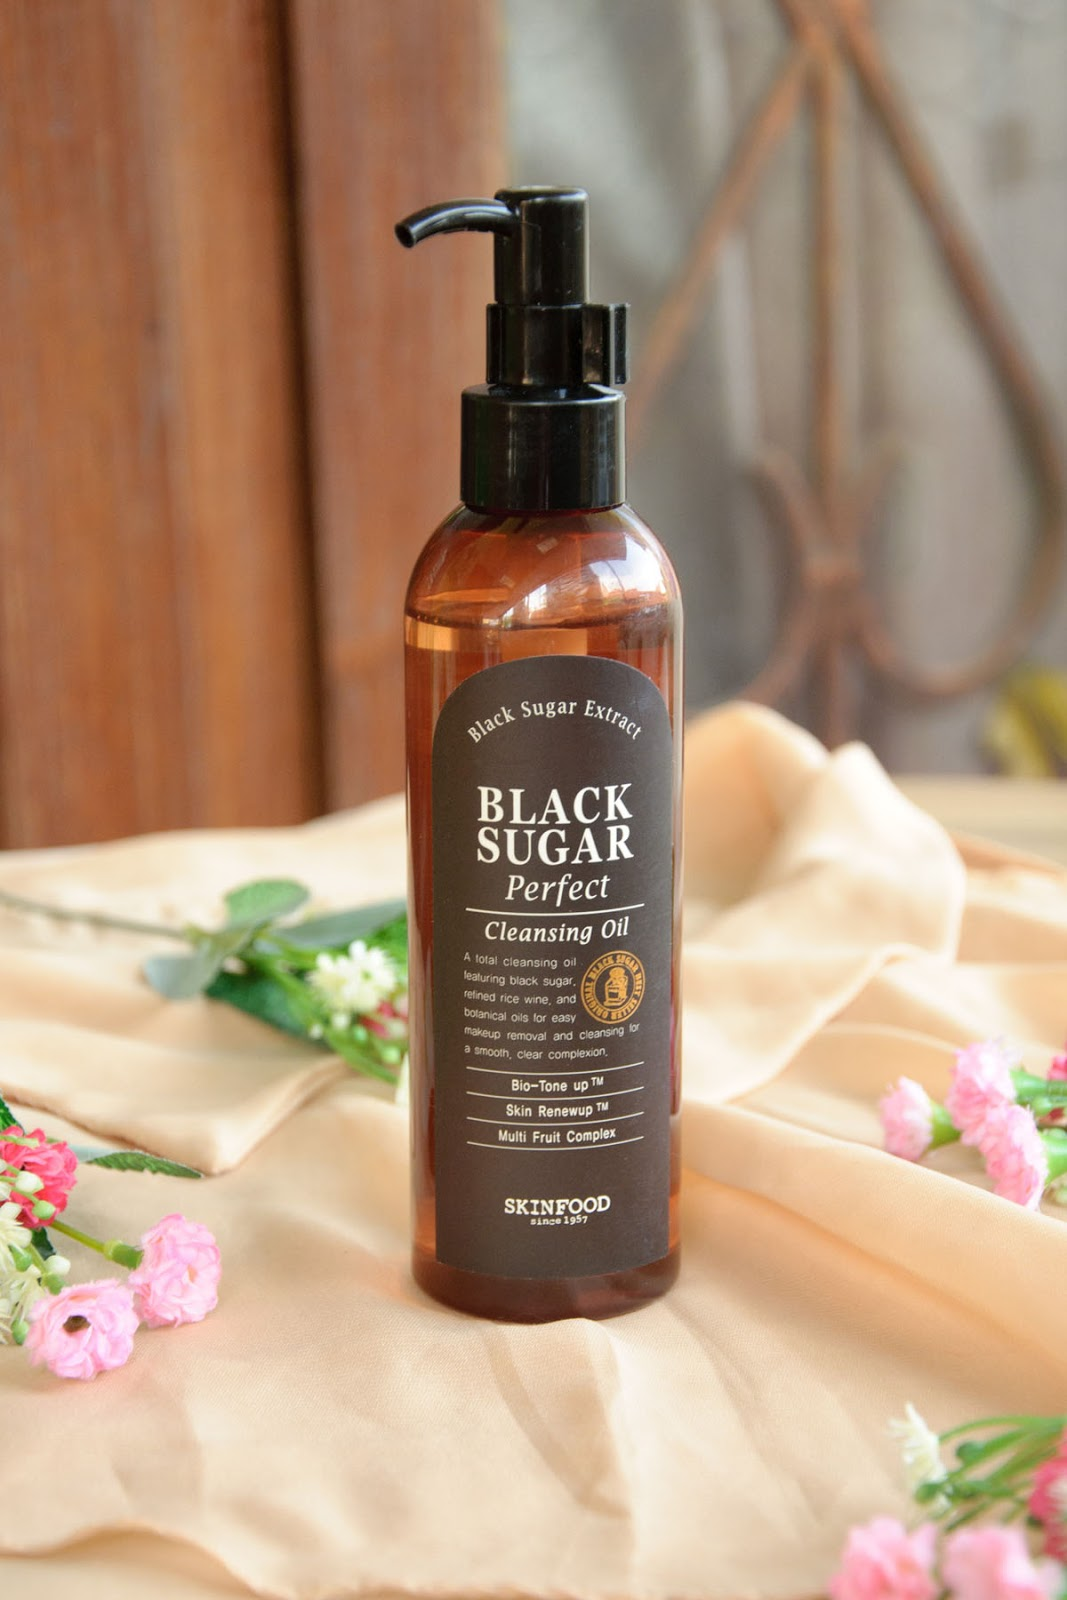 Black Sugar Perfect Cleansing Oil by Skinfood #6